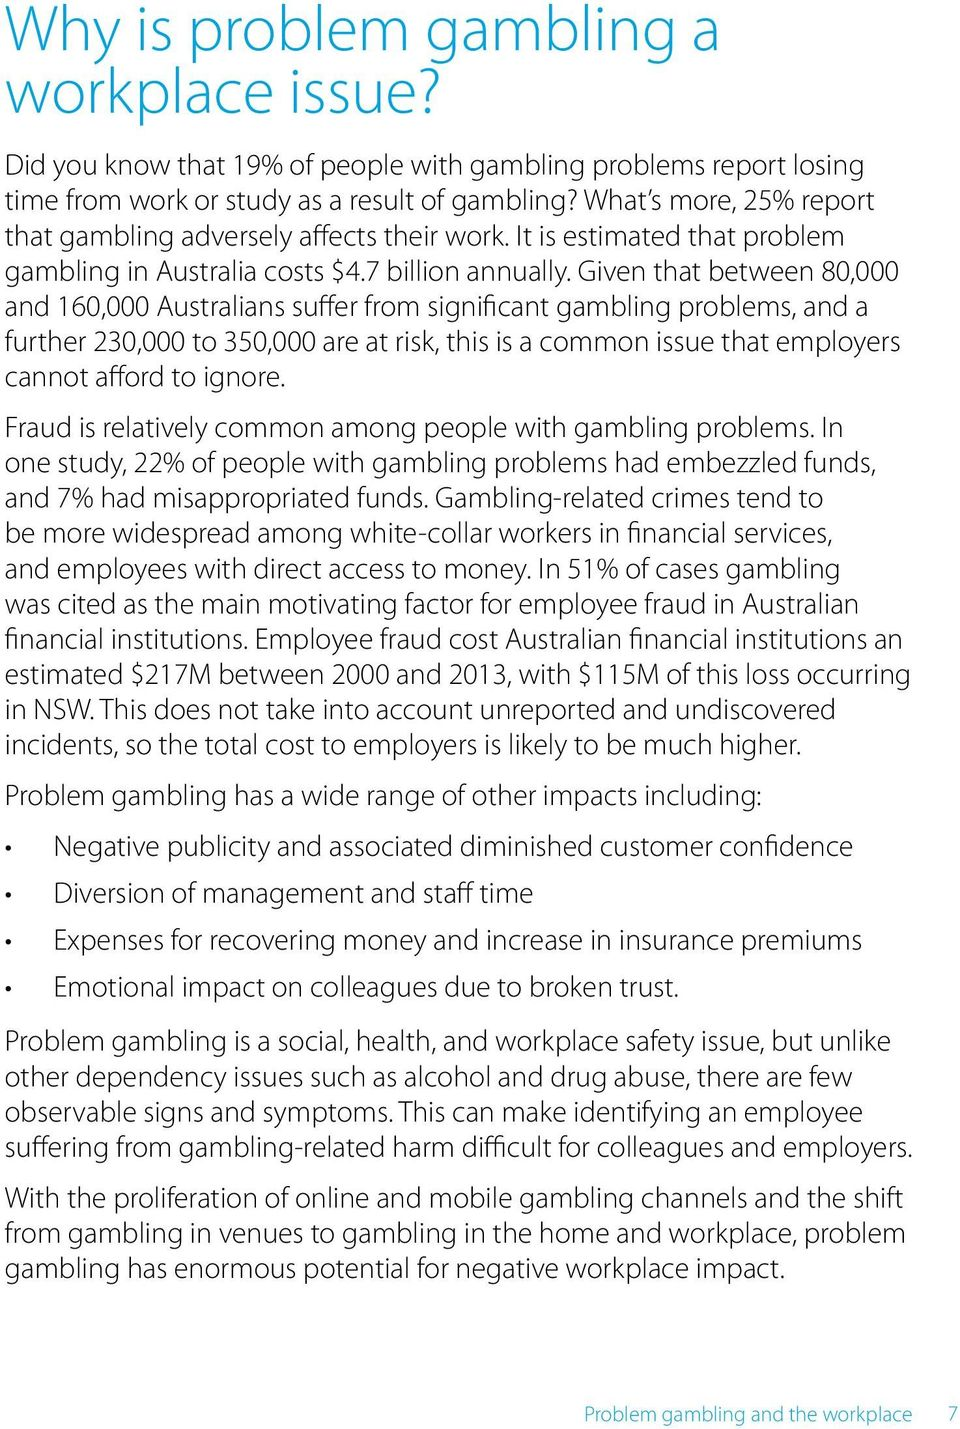 Given that between 80,000 and 160,000 Australians suffer from significant gambling problems, and a further 230,000 to 350,000 are at risk, this is a common issue that employers cannot afford to